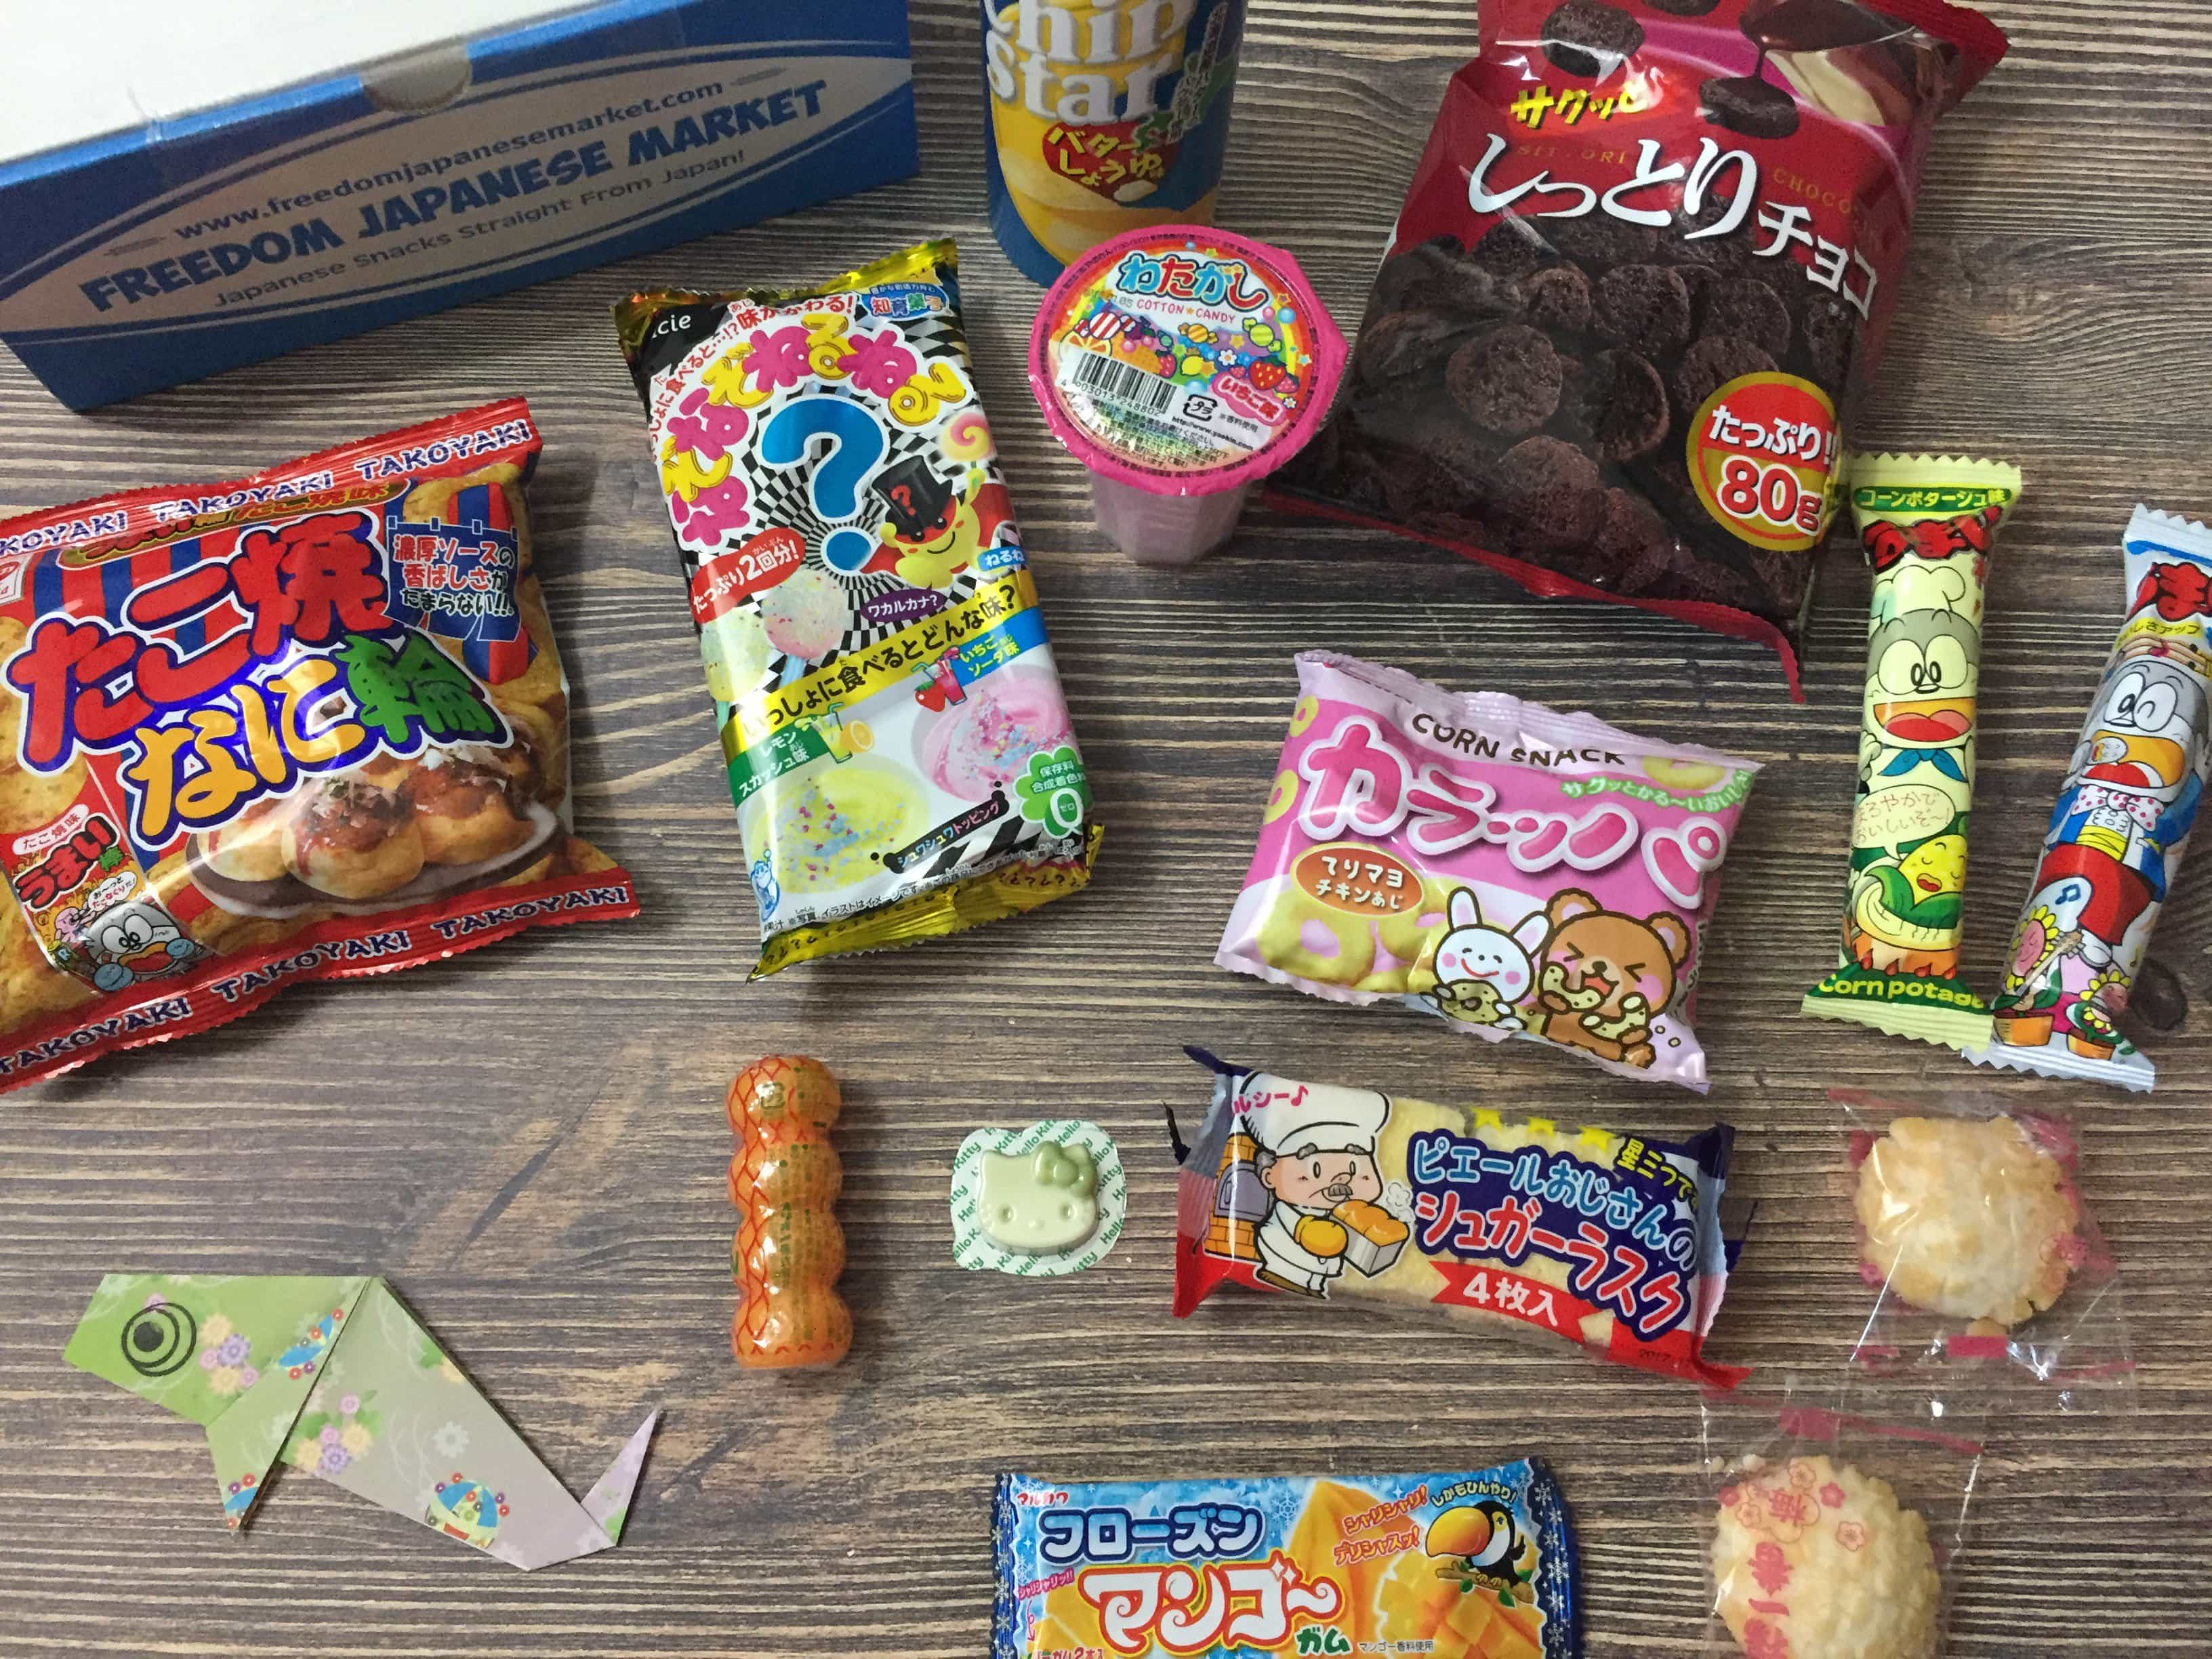 Freedom Japanese Market May 2017 Subscription Box Review